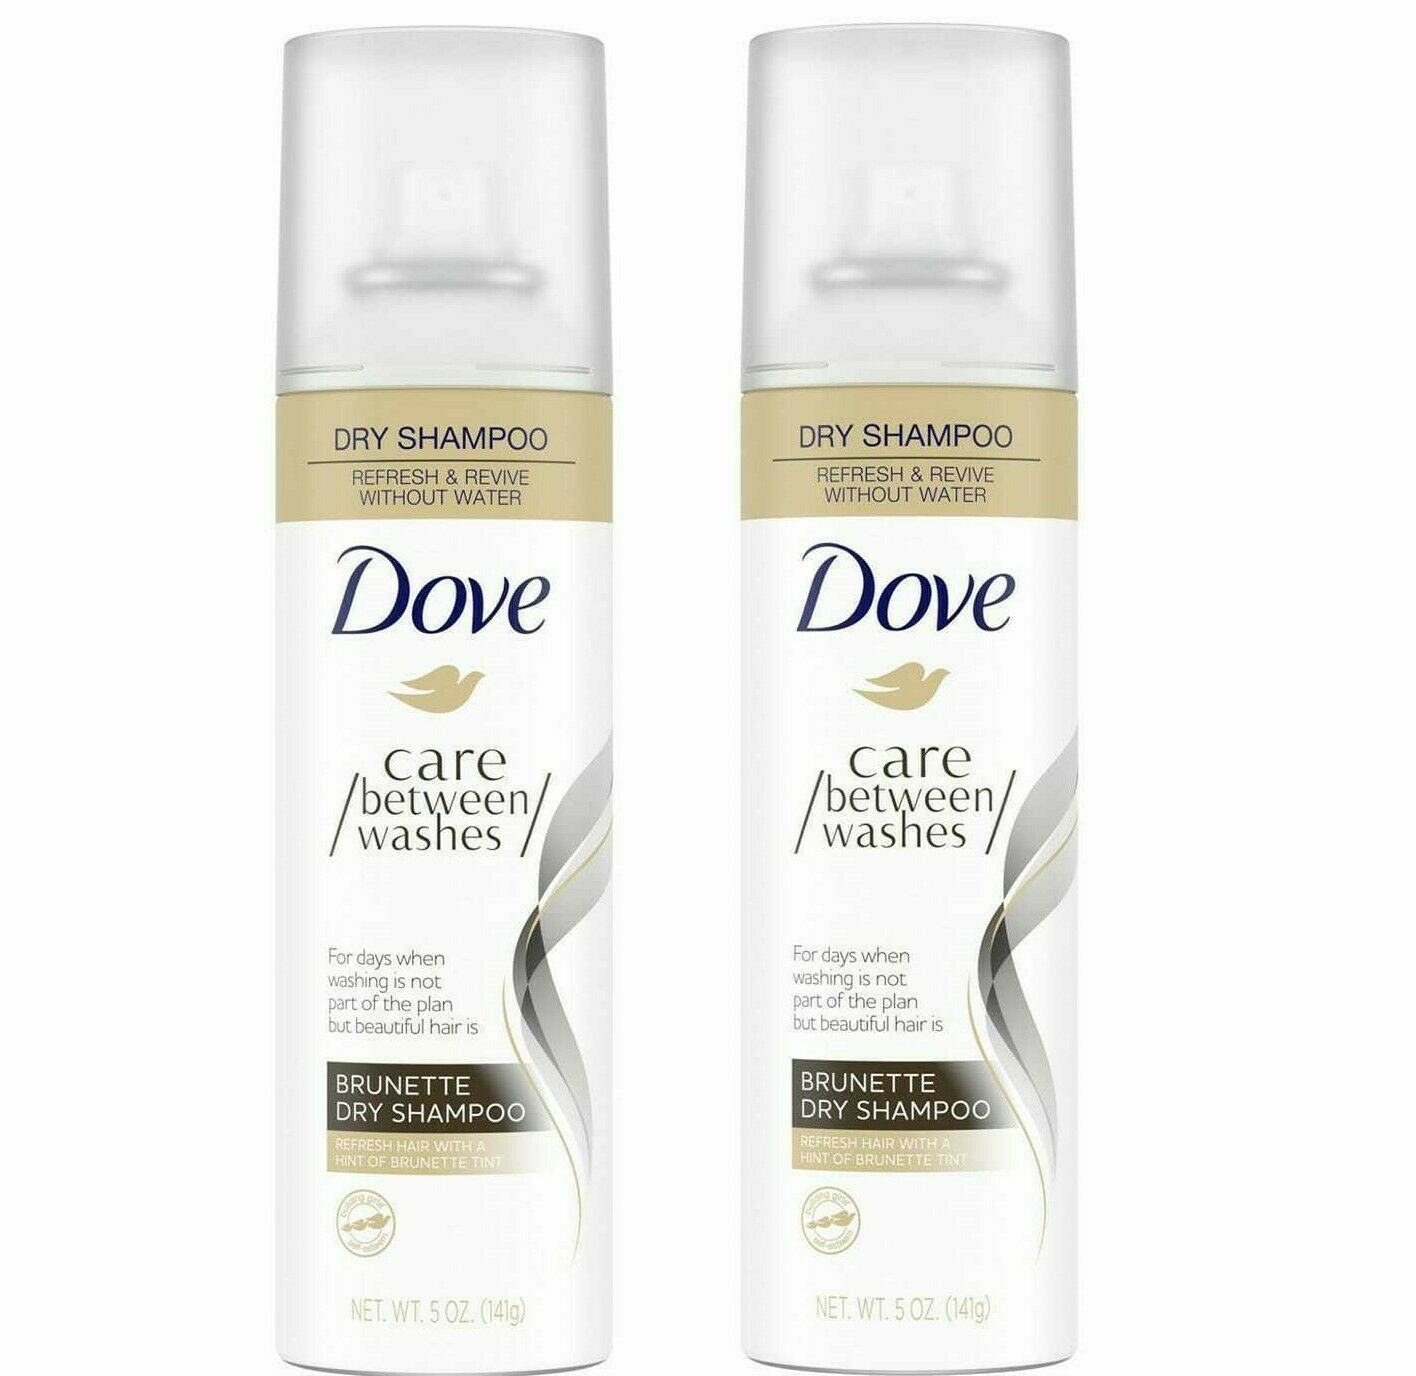 Primary image for Dove Care Between Washes Dry Shampoo Brunette 5 oz Lot Of 2 (LOC BK-19)